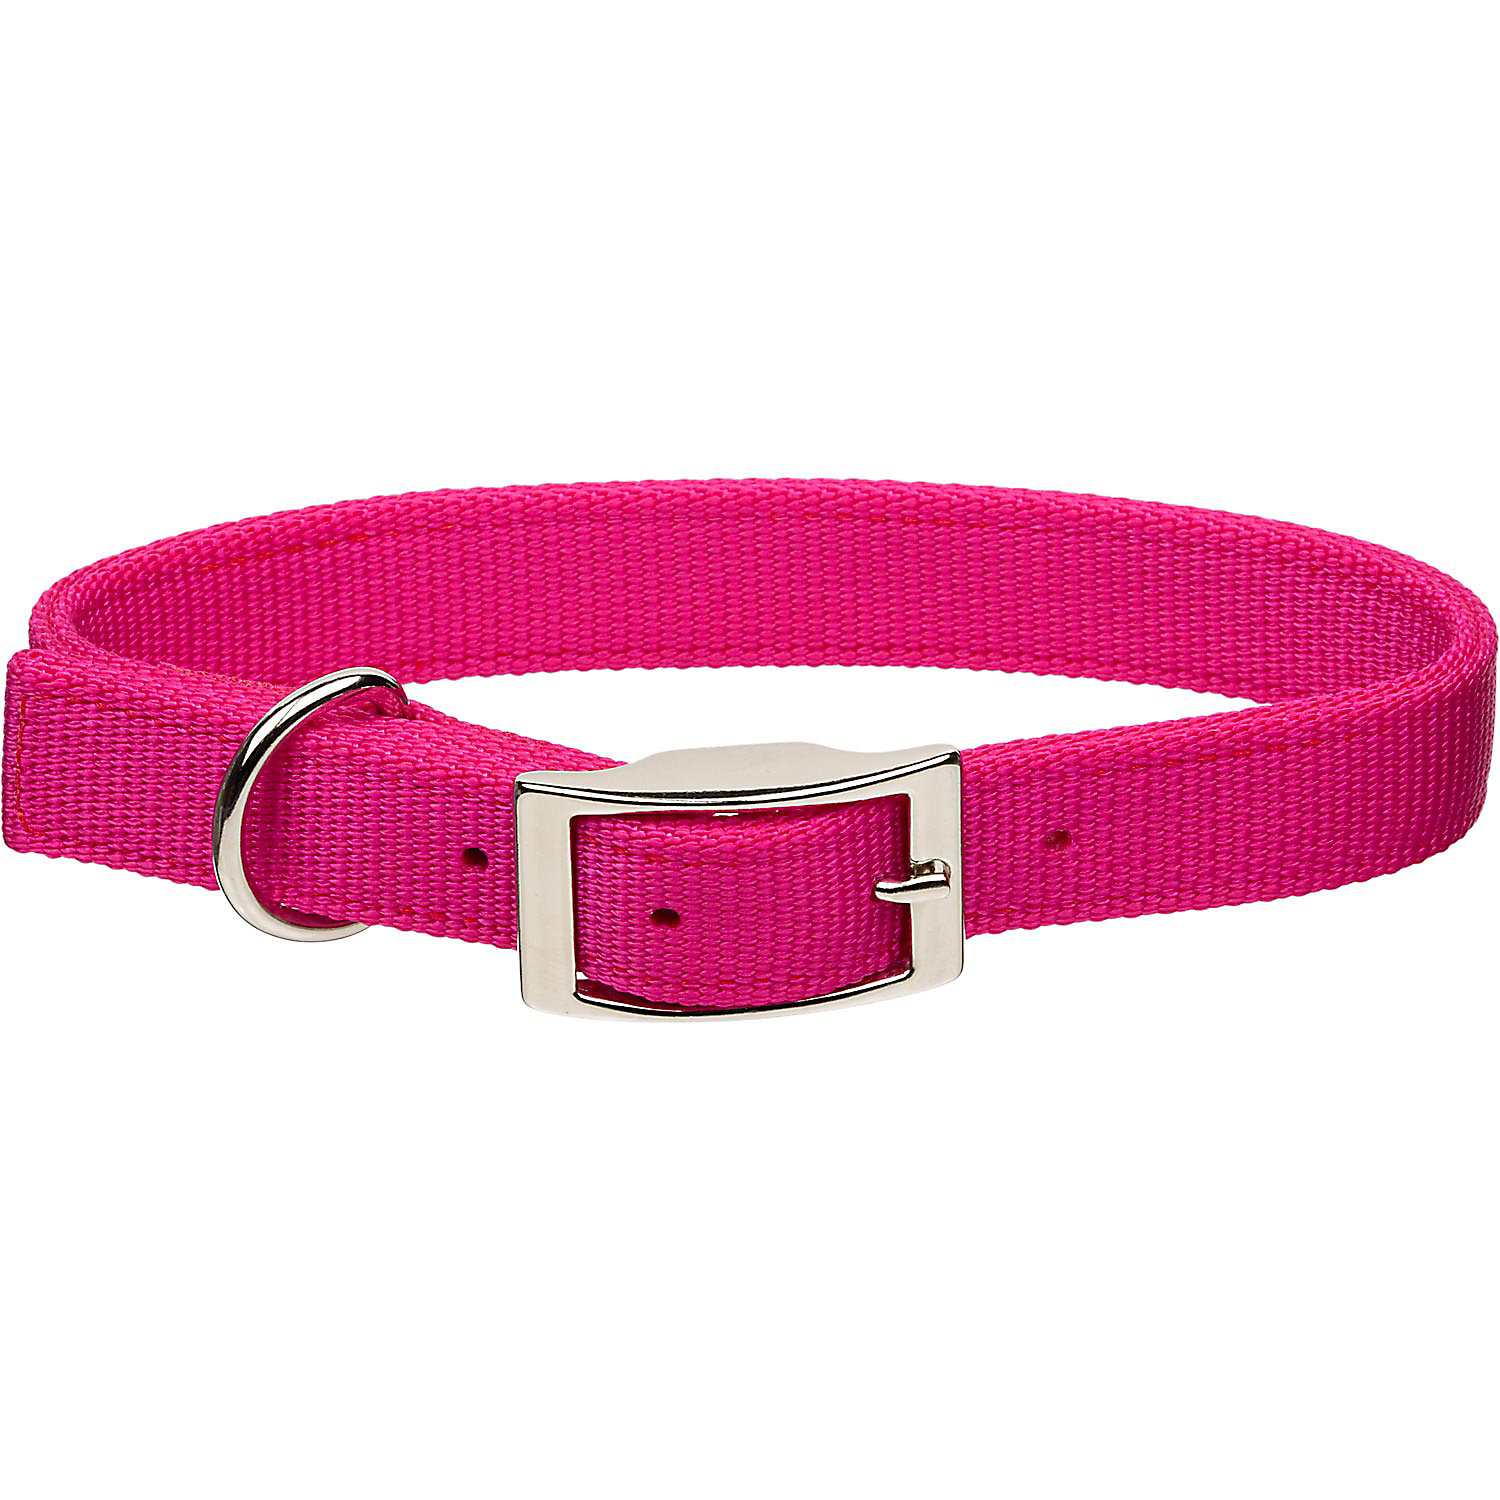 Coastal Pet Metal Buckle Double Ply Nylon Personalized Dog Collar in Pink Flamingo, 1